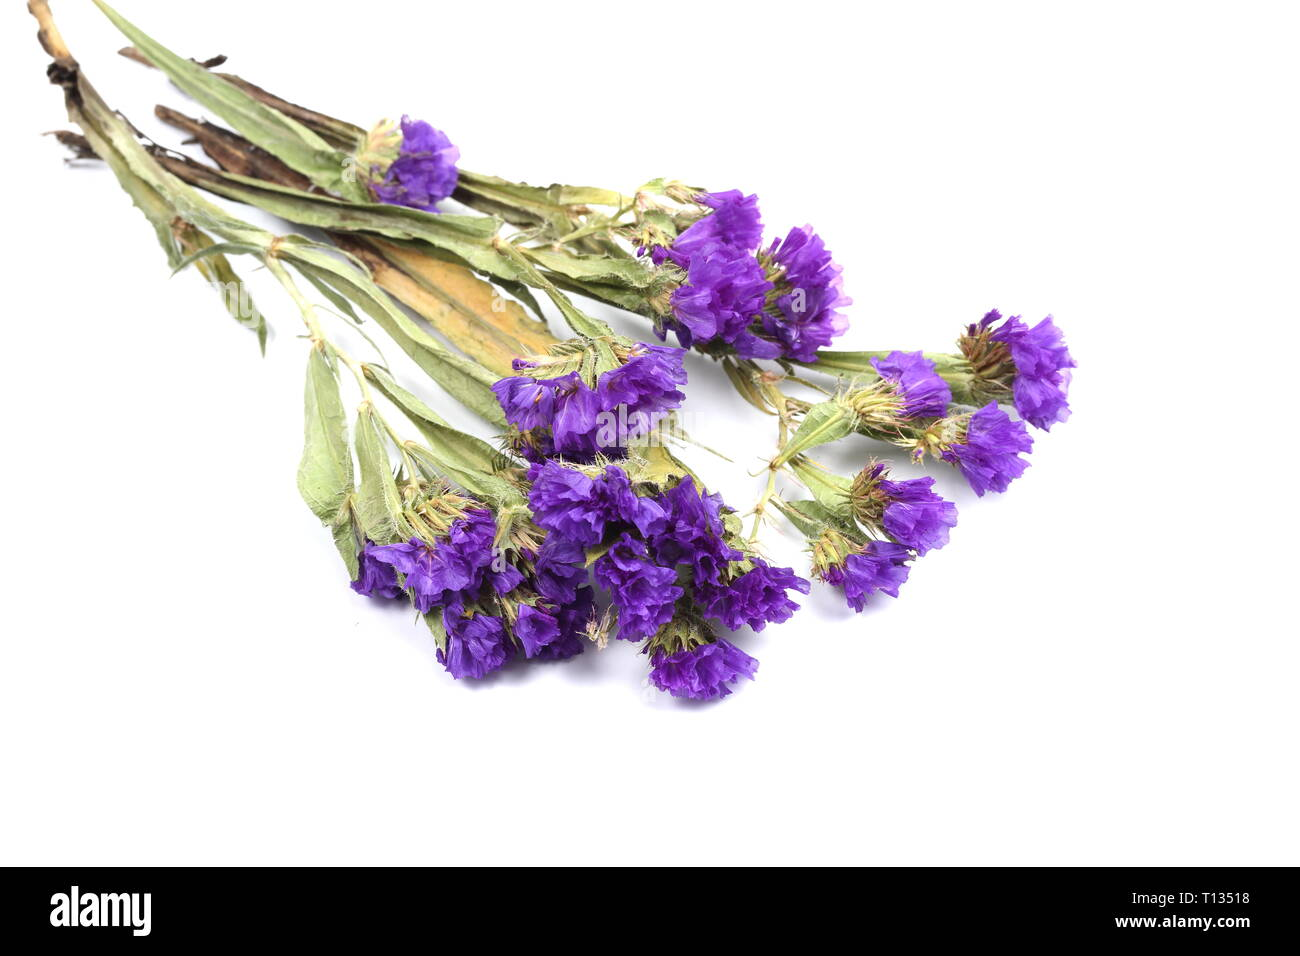 A bouquet of statice on a white background - Stock Image